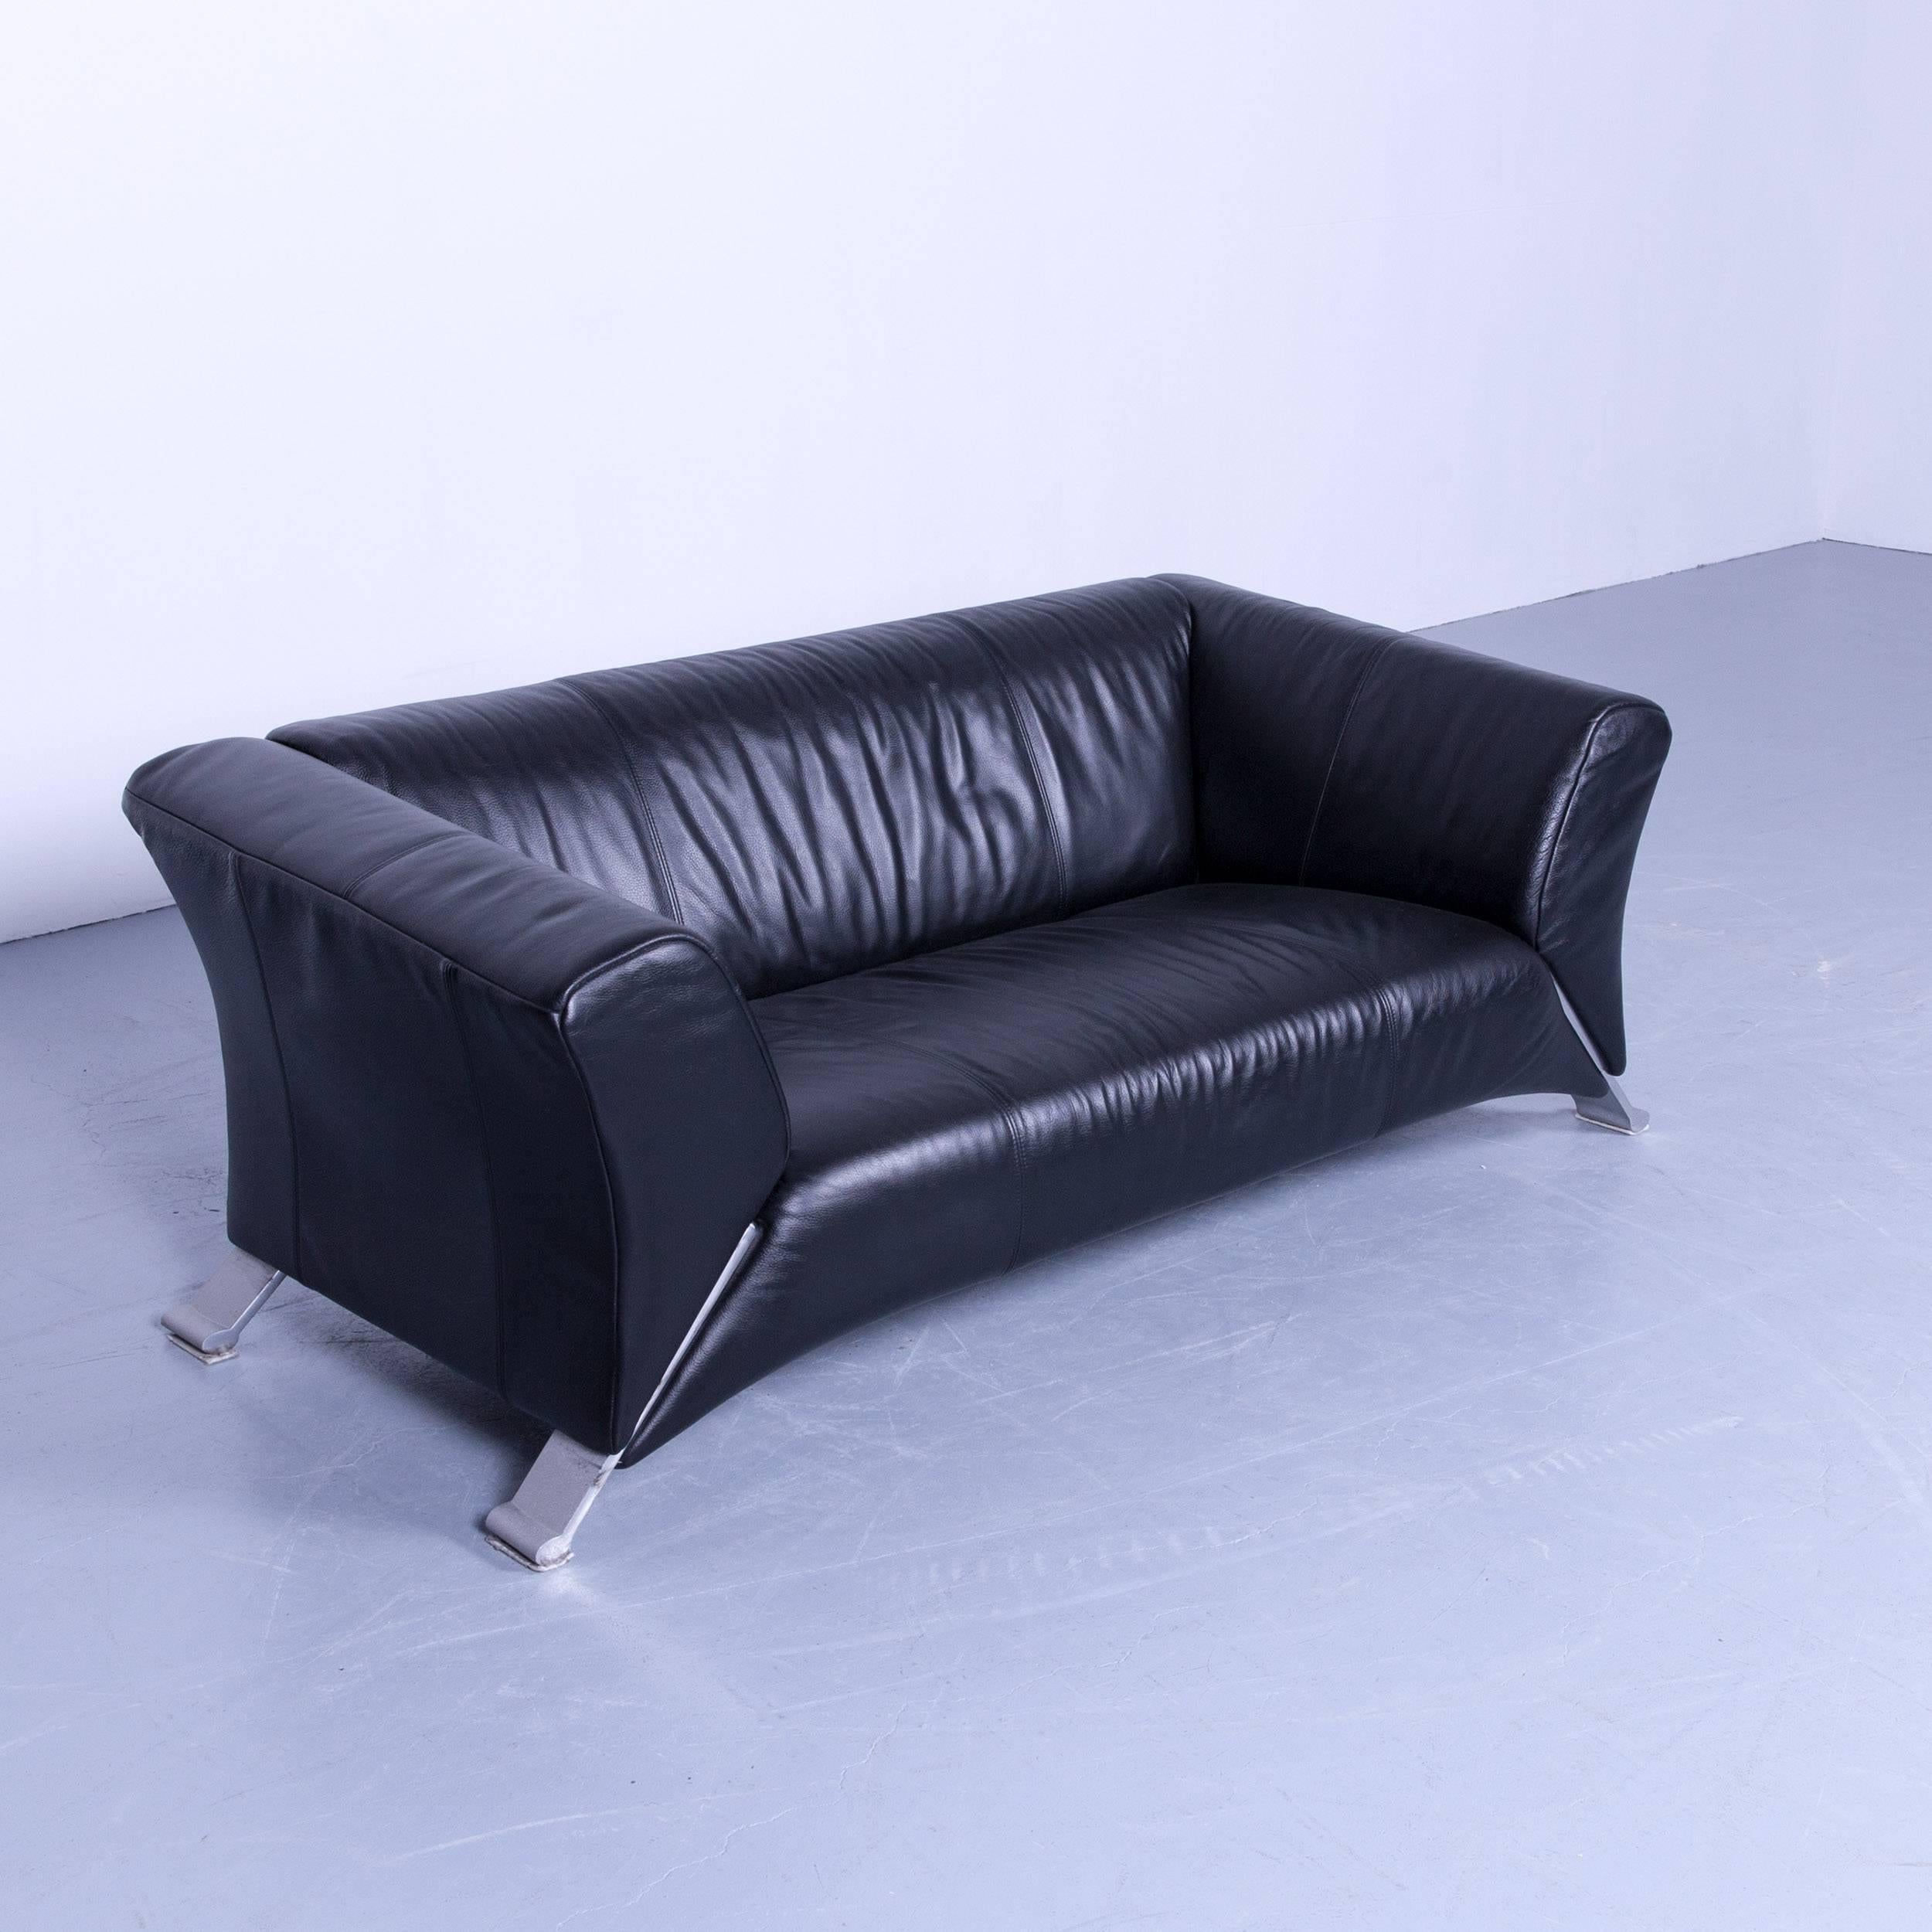 Rolf Benz 322 Sessel Rolf Benz 322 Designer Sofa Black Two Seat Leather Modern Couch Metal Feet